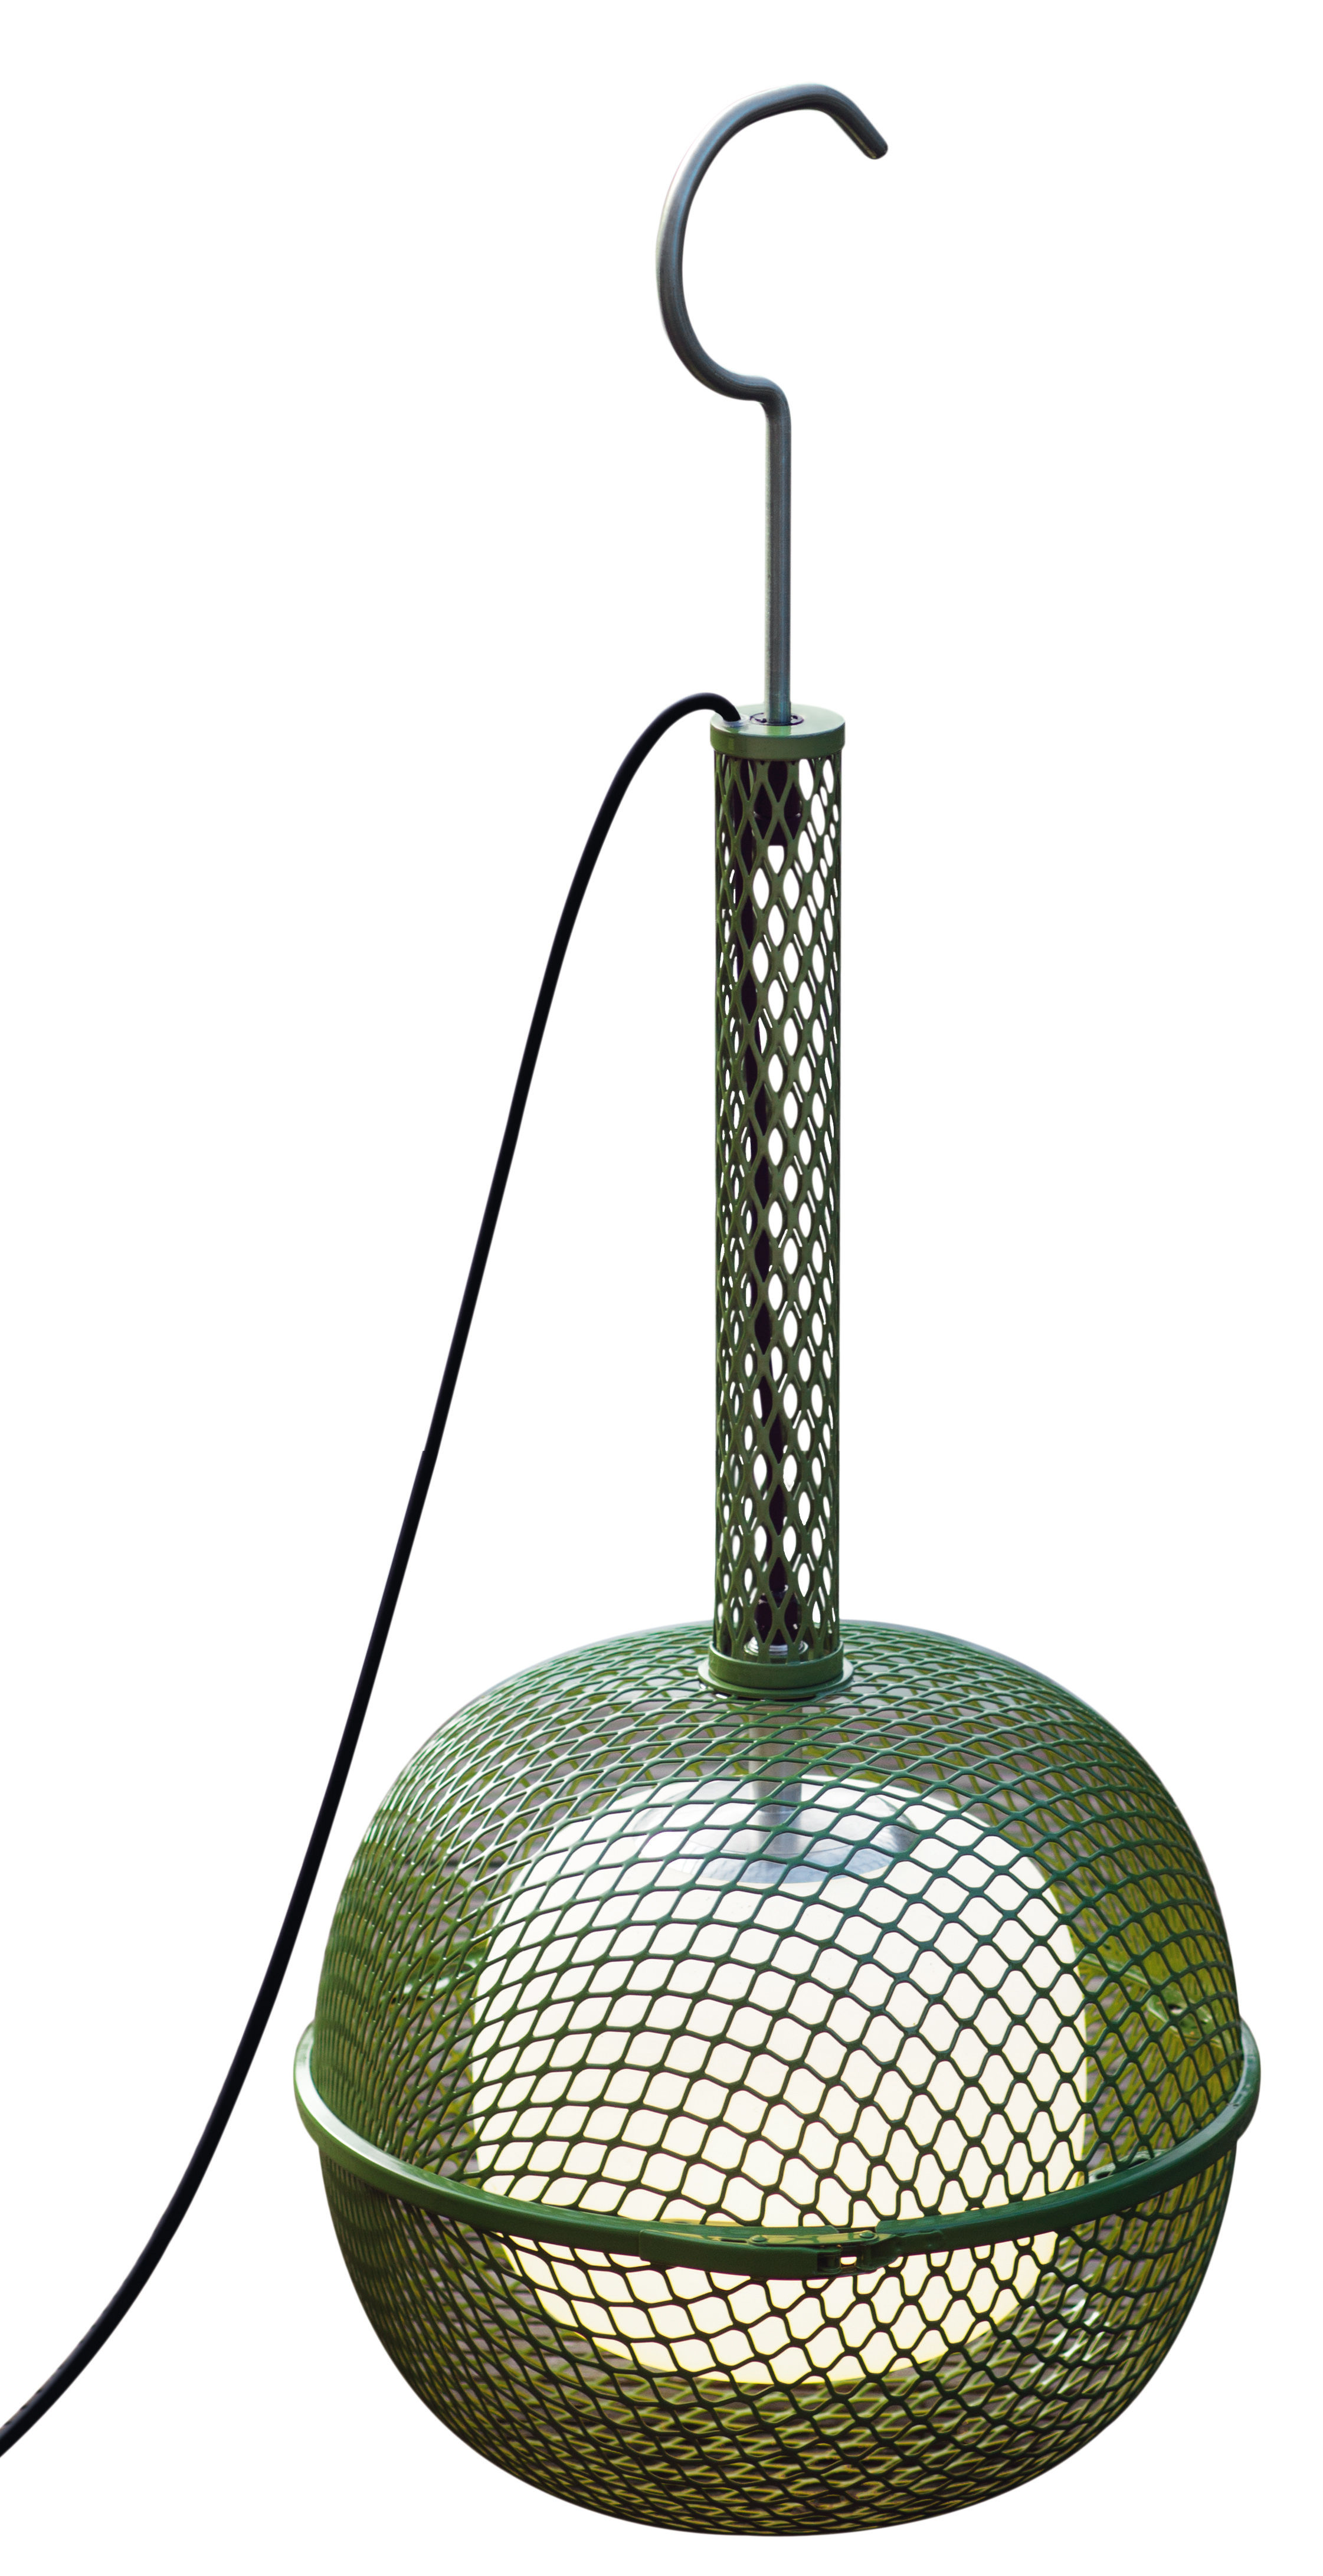 Lighting - Pendant Lighting - Noctiluque Wireless lamp by Roger Pradier - Green - Painted steel, Polypropylene